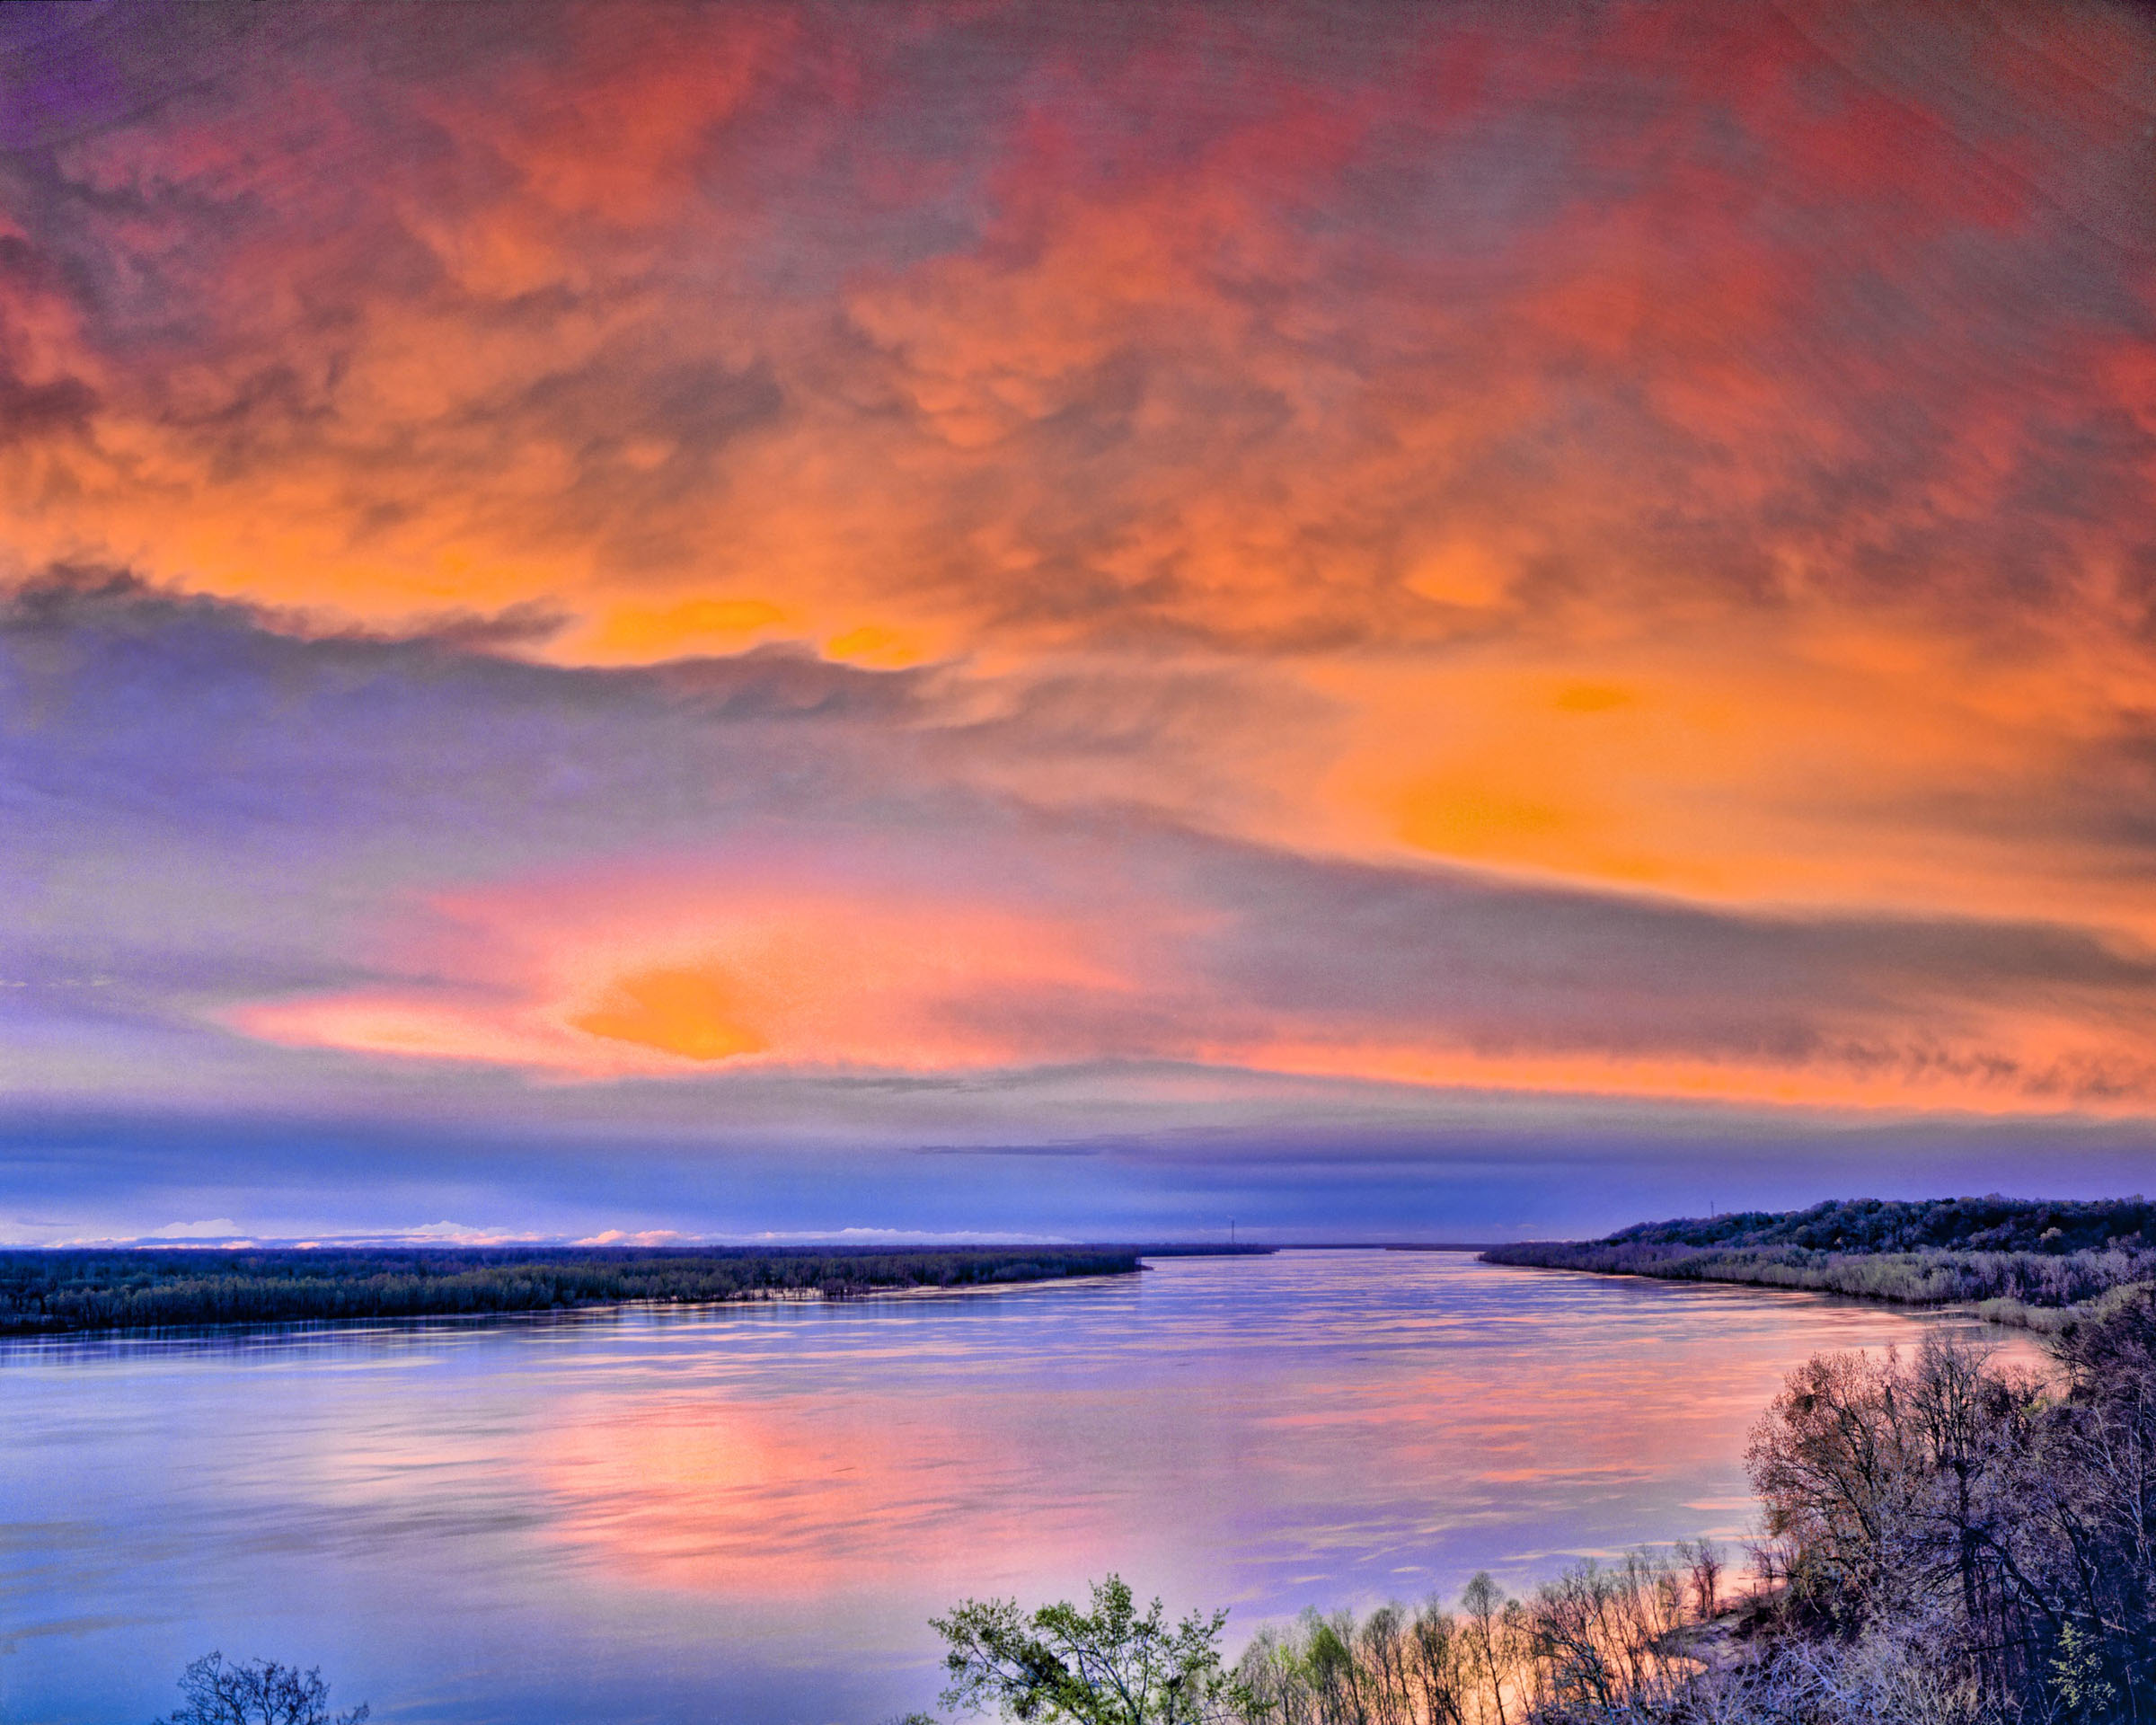 Spring Sunset, Mississippi River, Natchez Trail photographed by Tom Till